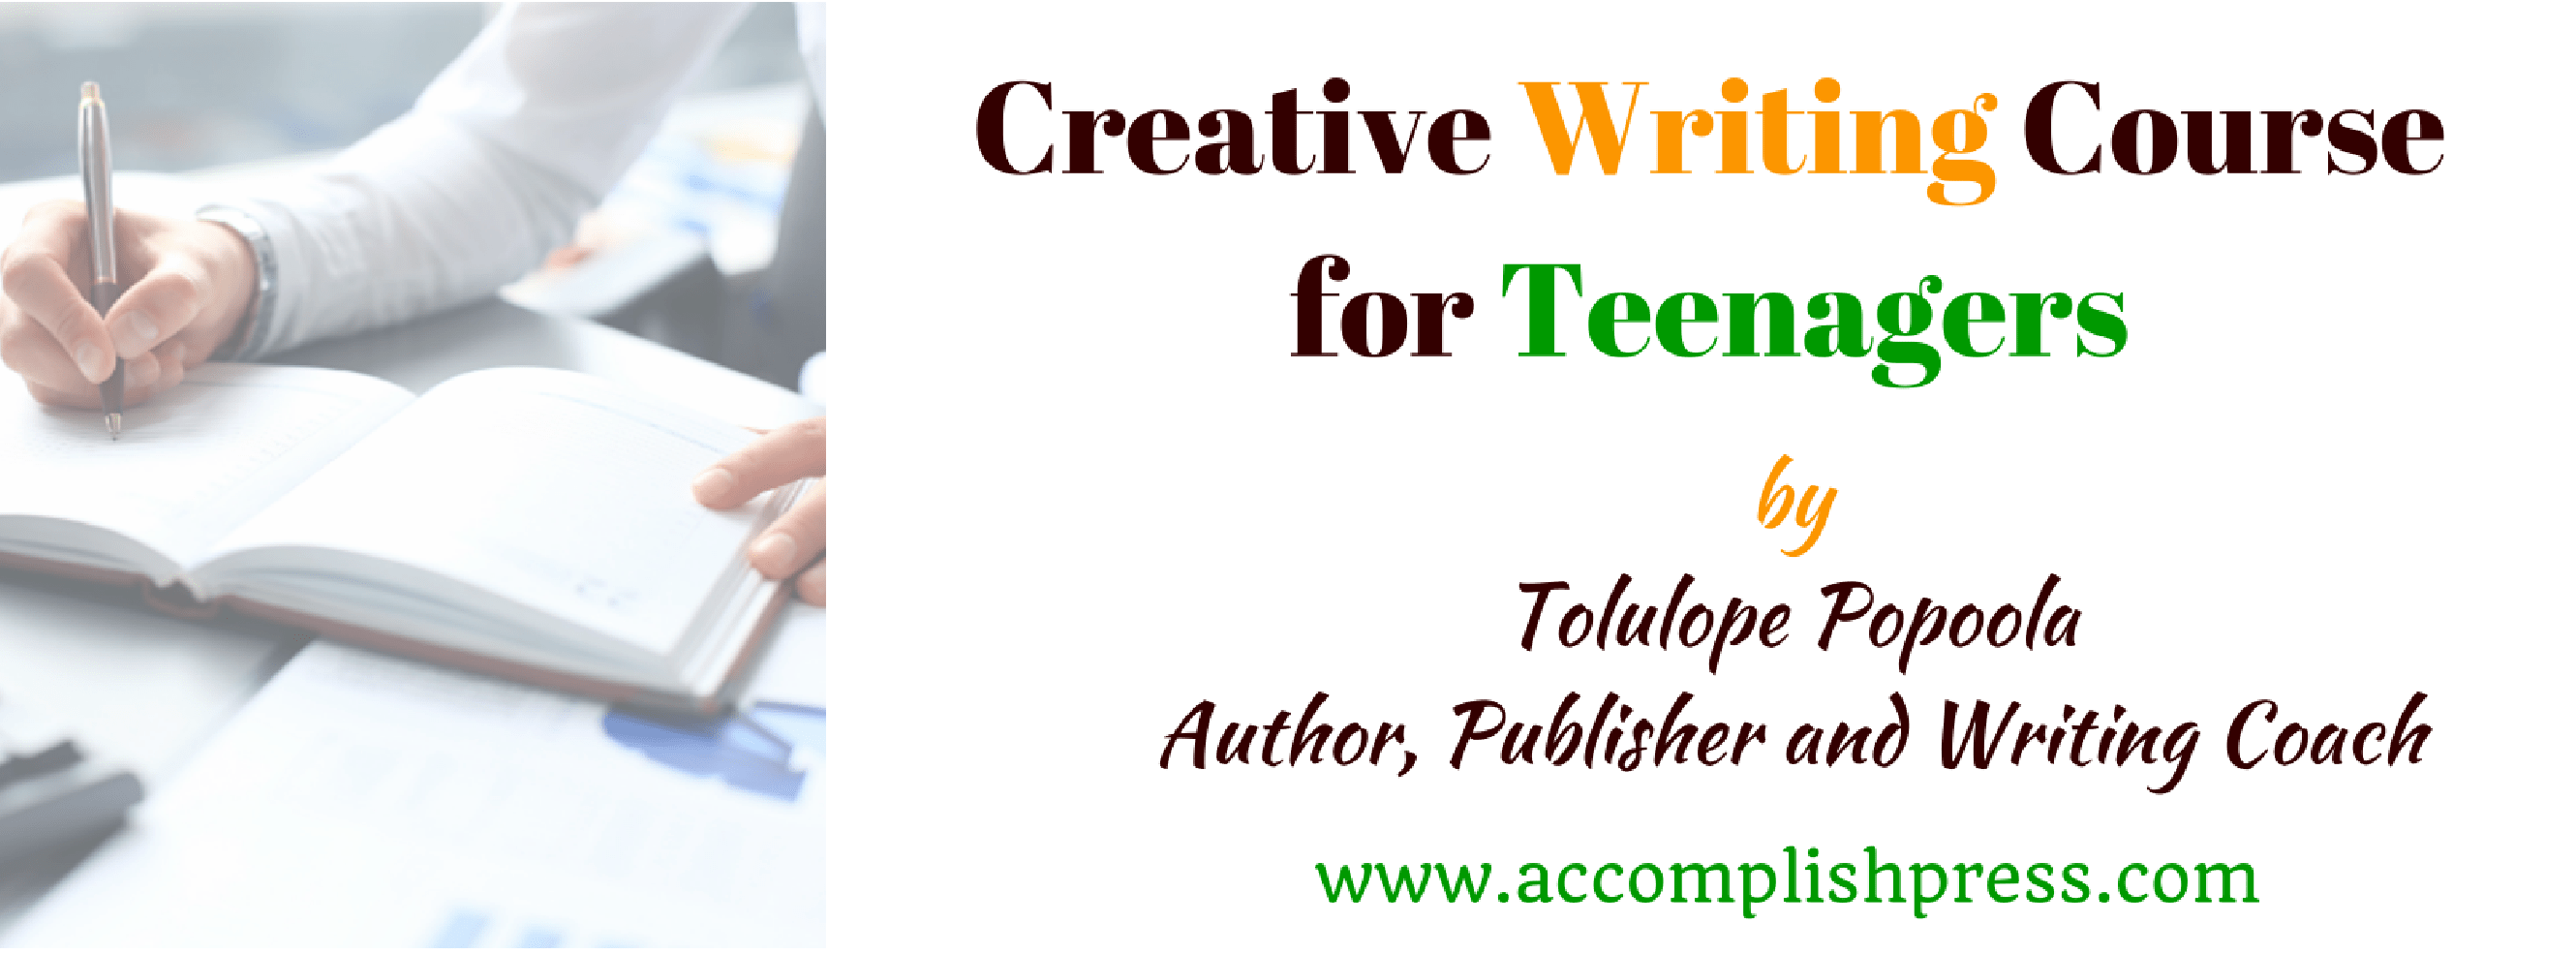 Guide to Studying Creative Writing